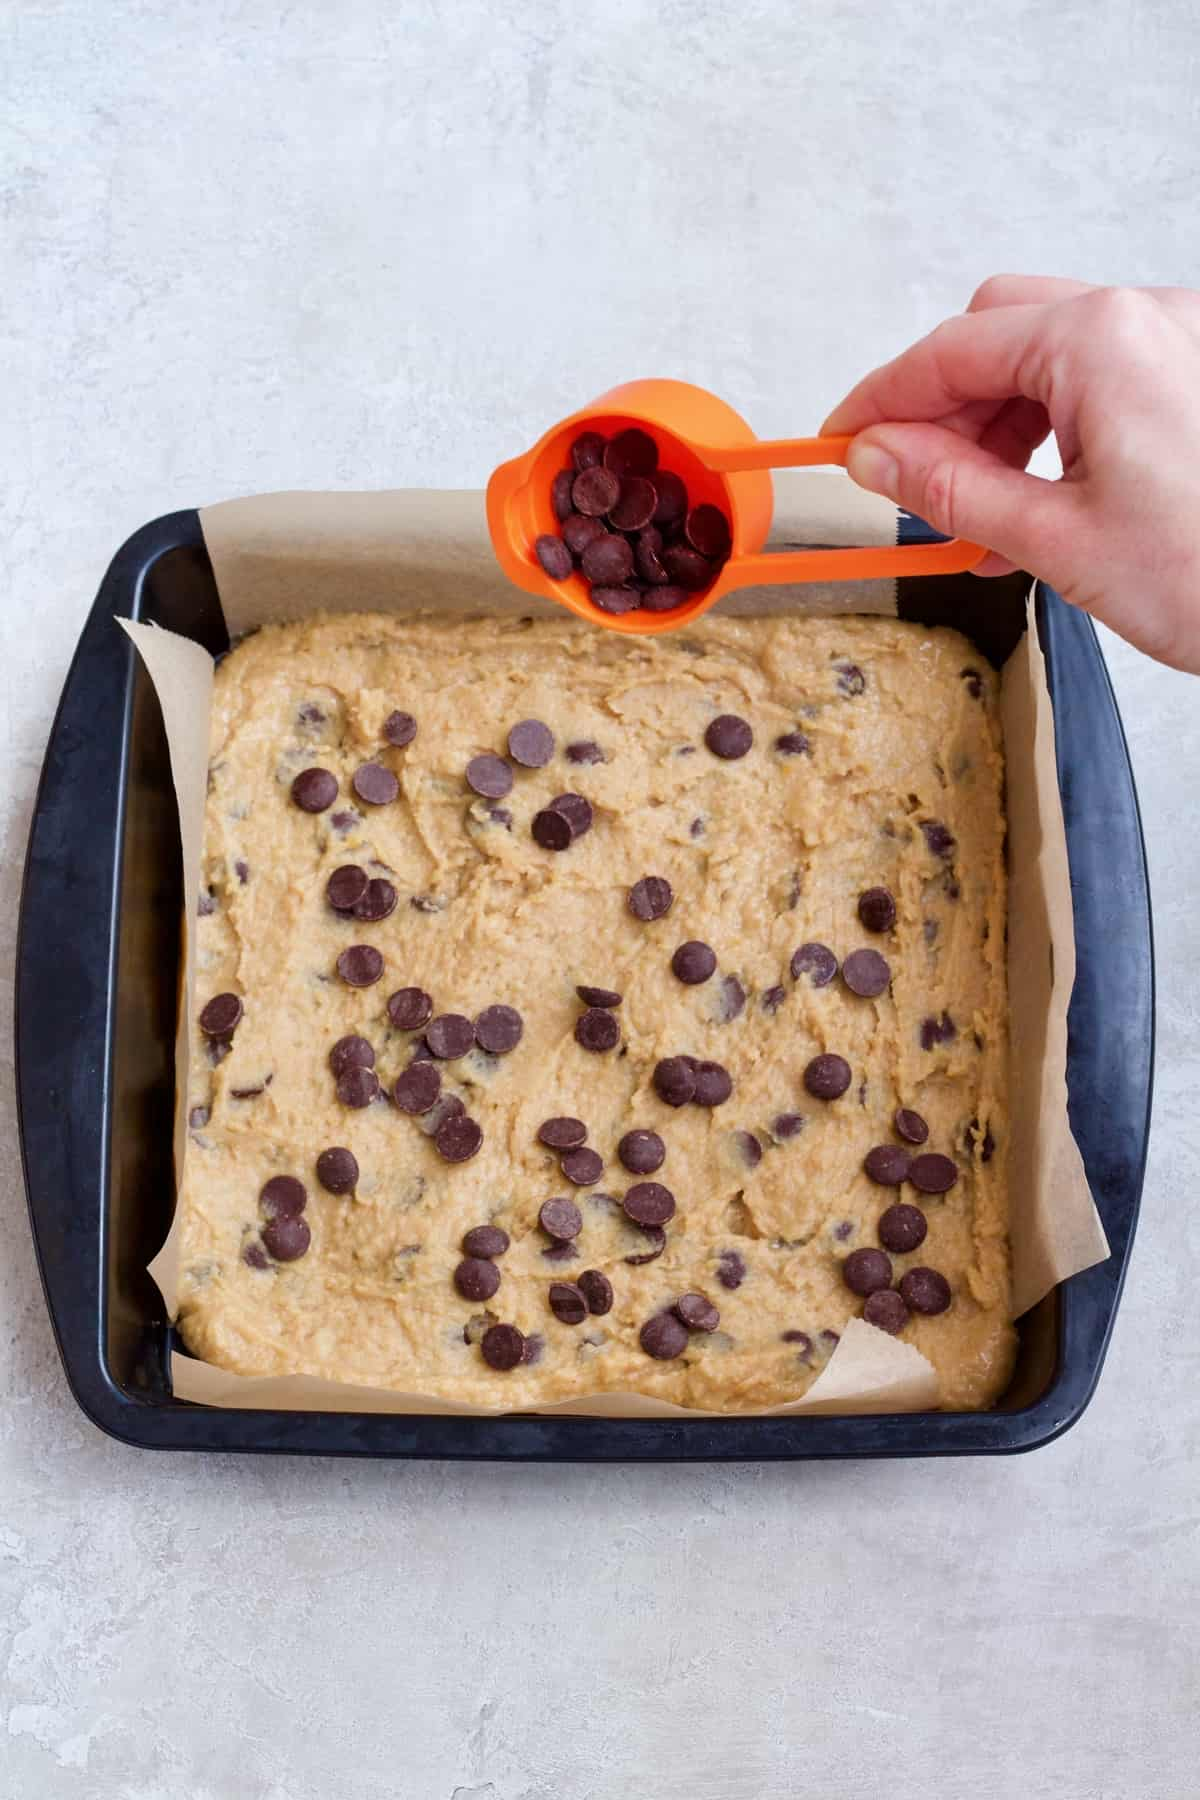 Hand sprinkling chocolate chips onto unbaked chickpea blondies.